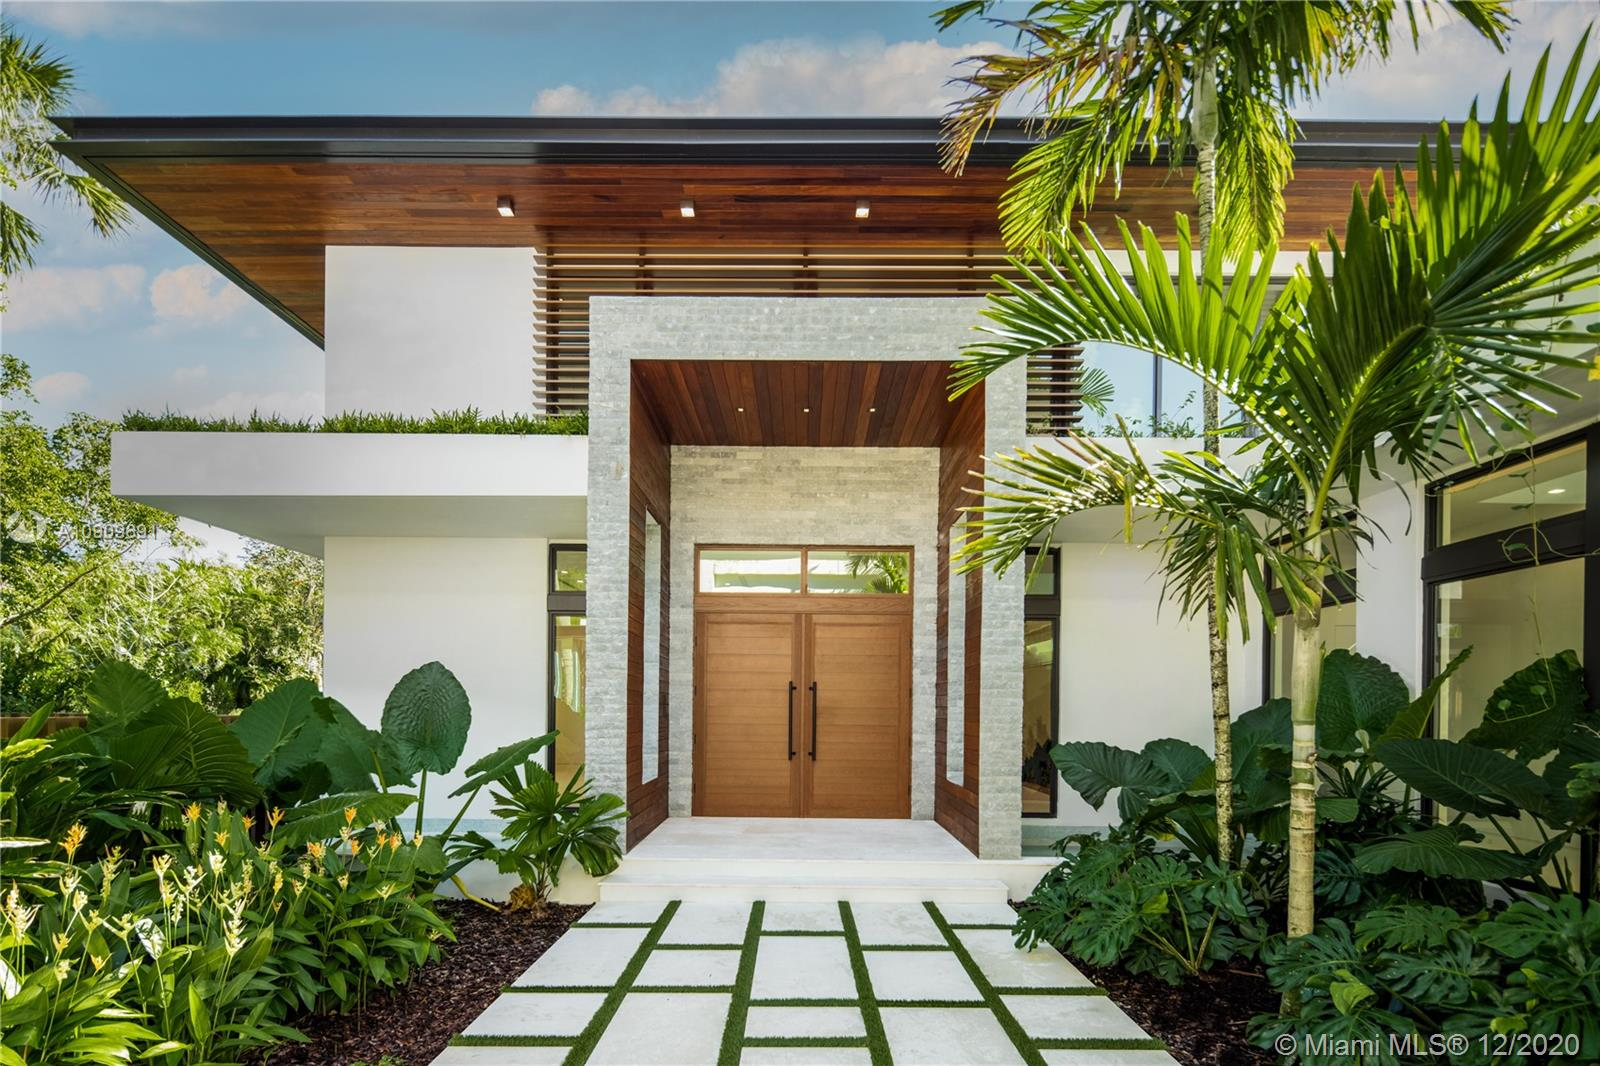 Introducing a luxury, personal resort in a premium location by a leading residential developer, Location Development. Designed by César Molina. This truly exceptional, high-quality residence embodies the Florida lifestyle, inside and out. The spacious floor plan highlights an indoor/outdoor lifestyle with large terraces, outdoor entertainment areas, and multiple bedrooms, featuring a master apartment and separate guest suite. A suite of thoughtfully-planned features and amenities that will provide incredible spaces to relax, entertain and experience the best that life has to offer. Complete home automation, wine room, media room, dedicated study, outdoor kitchen and fire pit, a lap pool, gym, hammam spa w/ steam room & hydrotherapy program. Garage fits up to 8 cars for an avid collector.